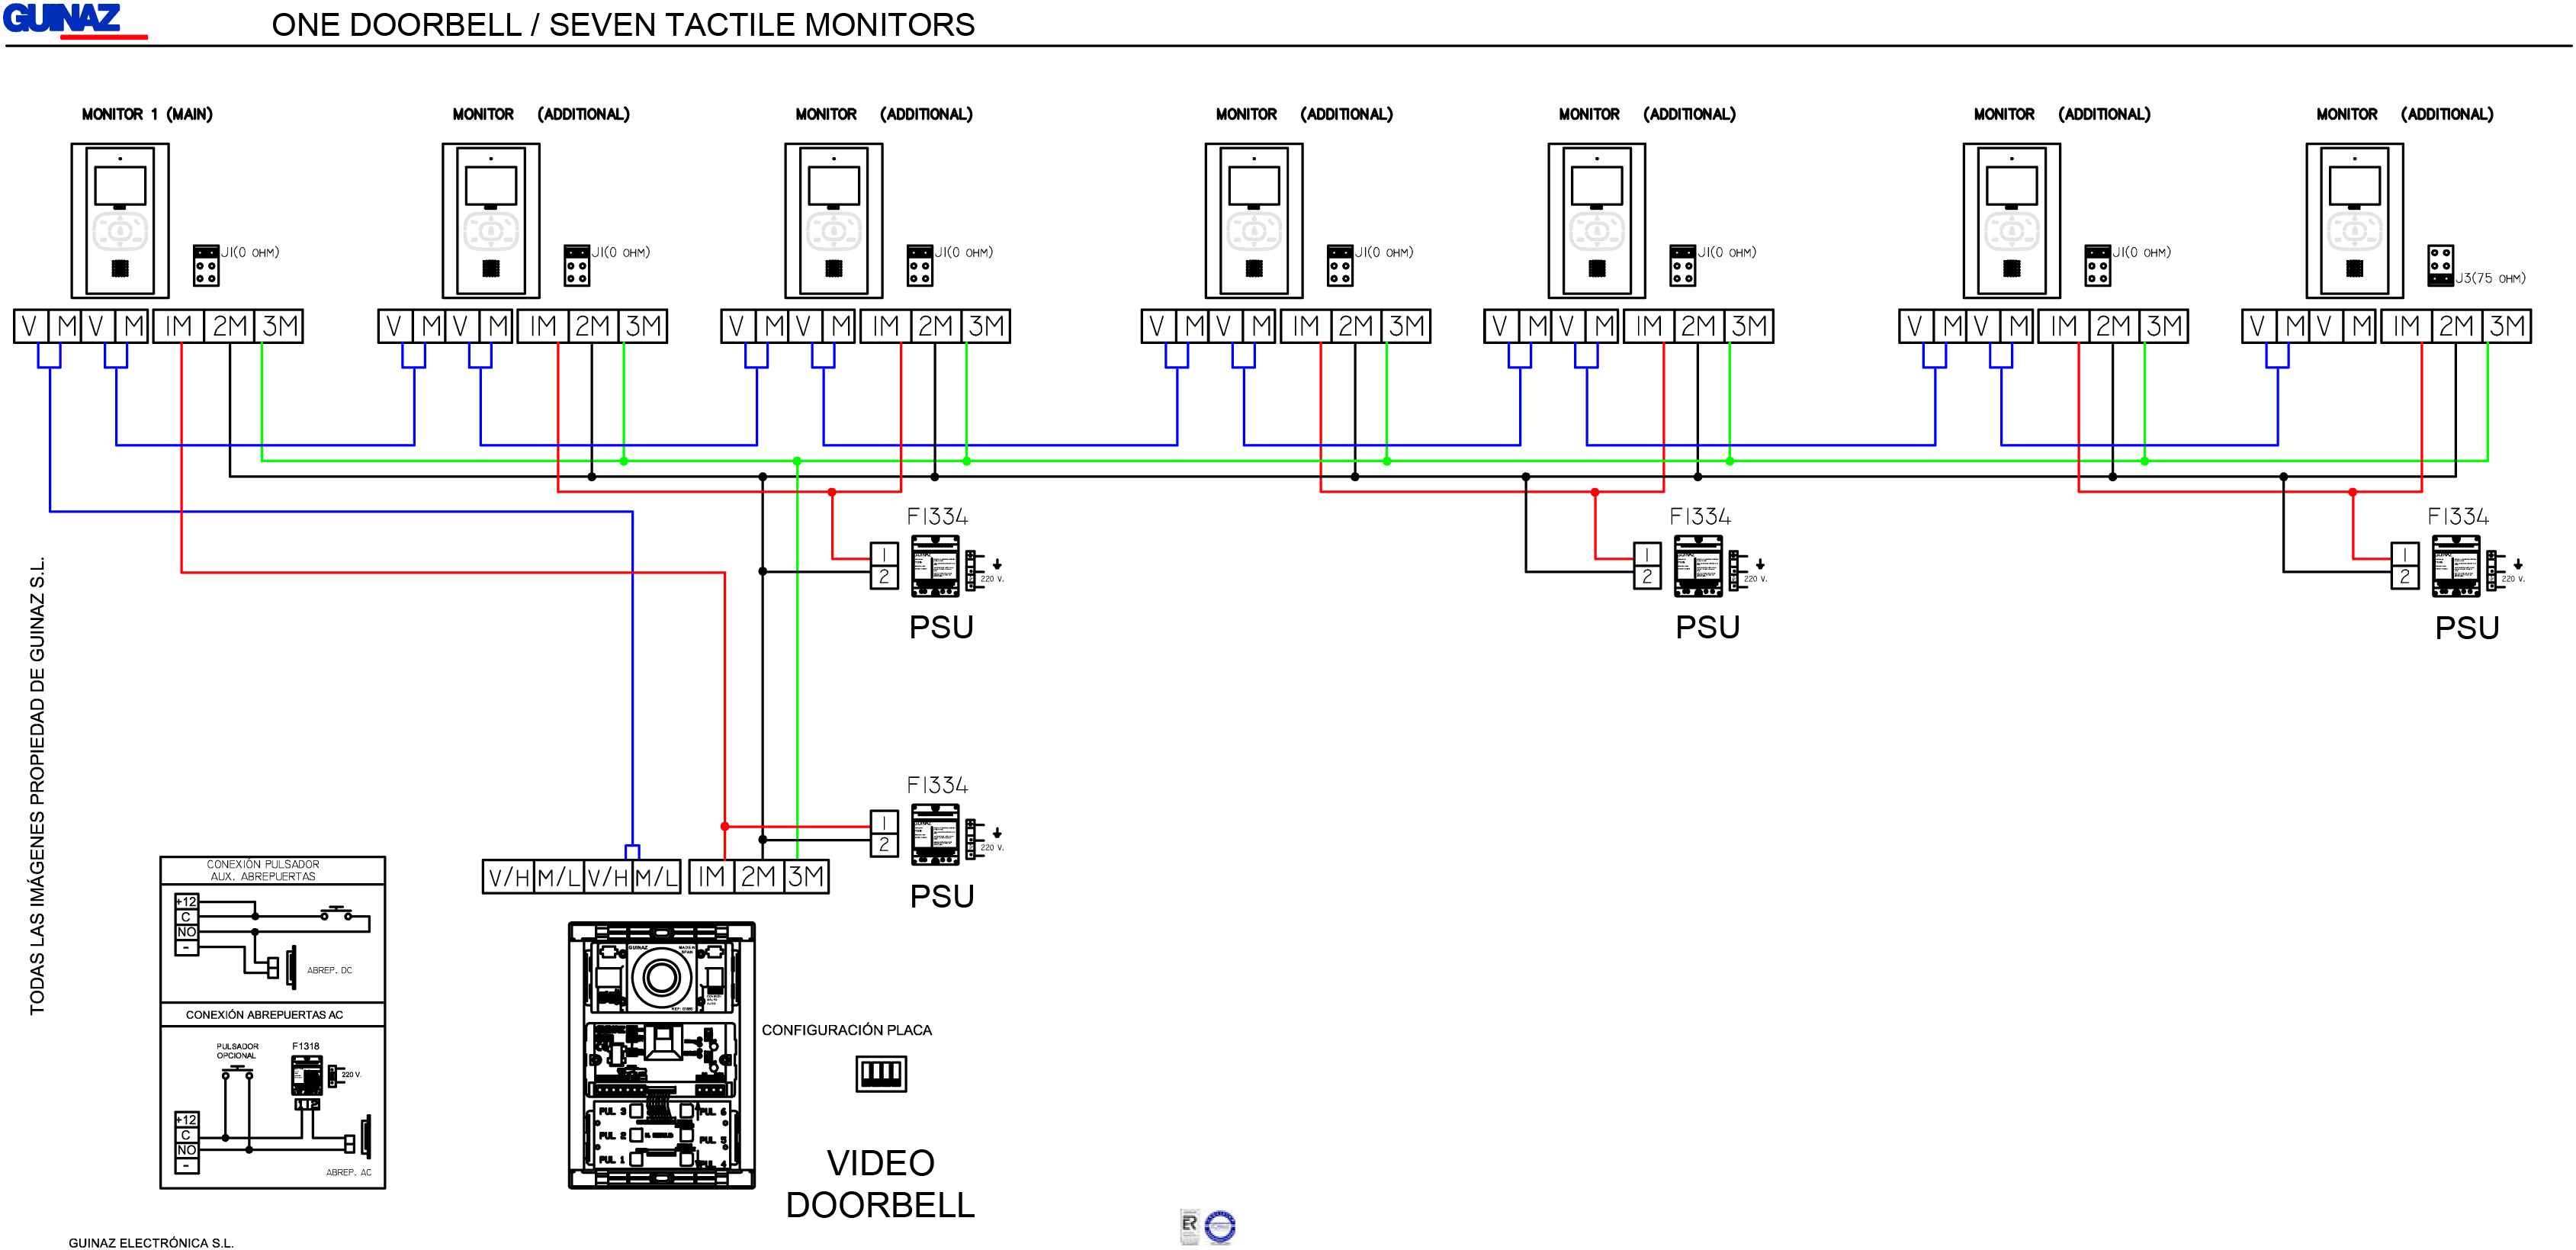 4 wire inter wiring instruction diagram wiring diagram third level Old Telephone Wire Colors 3 wire inter systems wiring diagram data wiring diagram 4 wire transmitter wiring diagram 3 wire